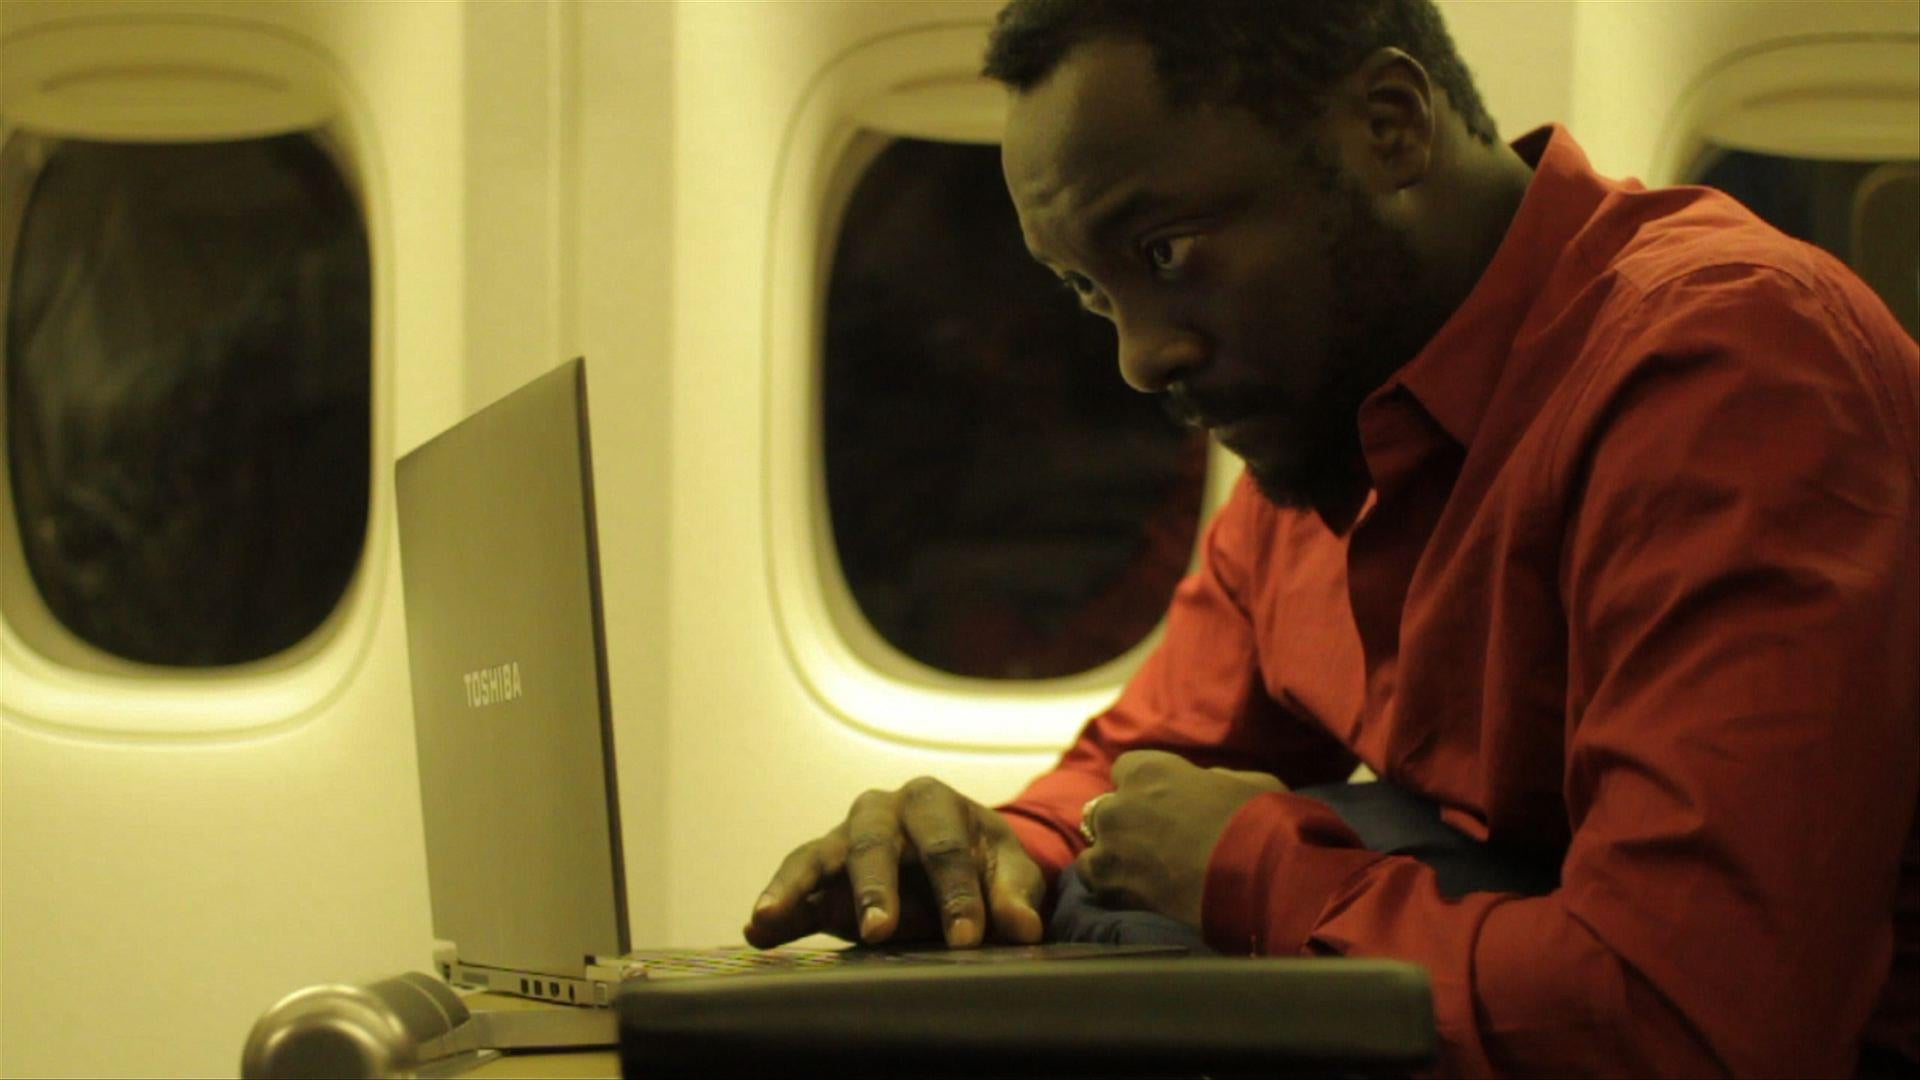 will.i.am seems to be working hard as creative director for Intel